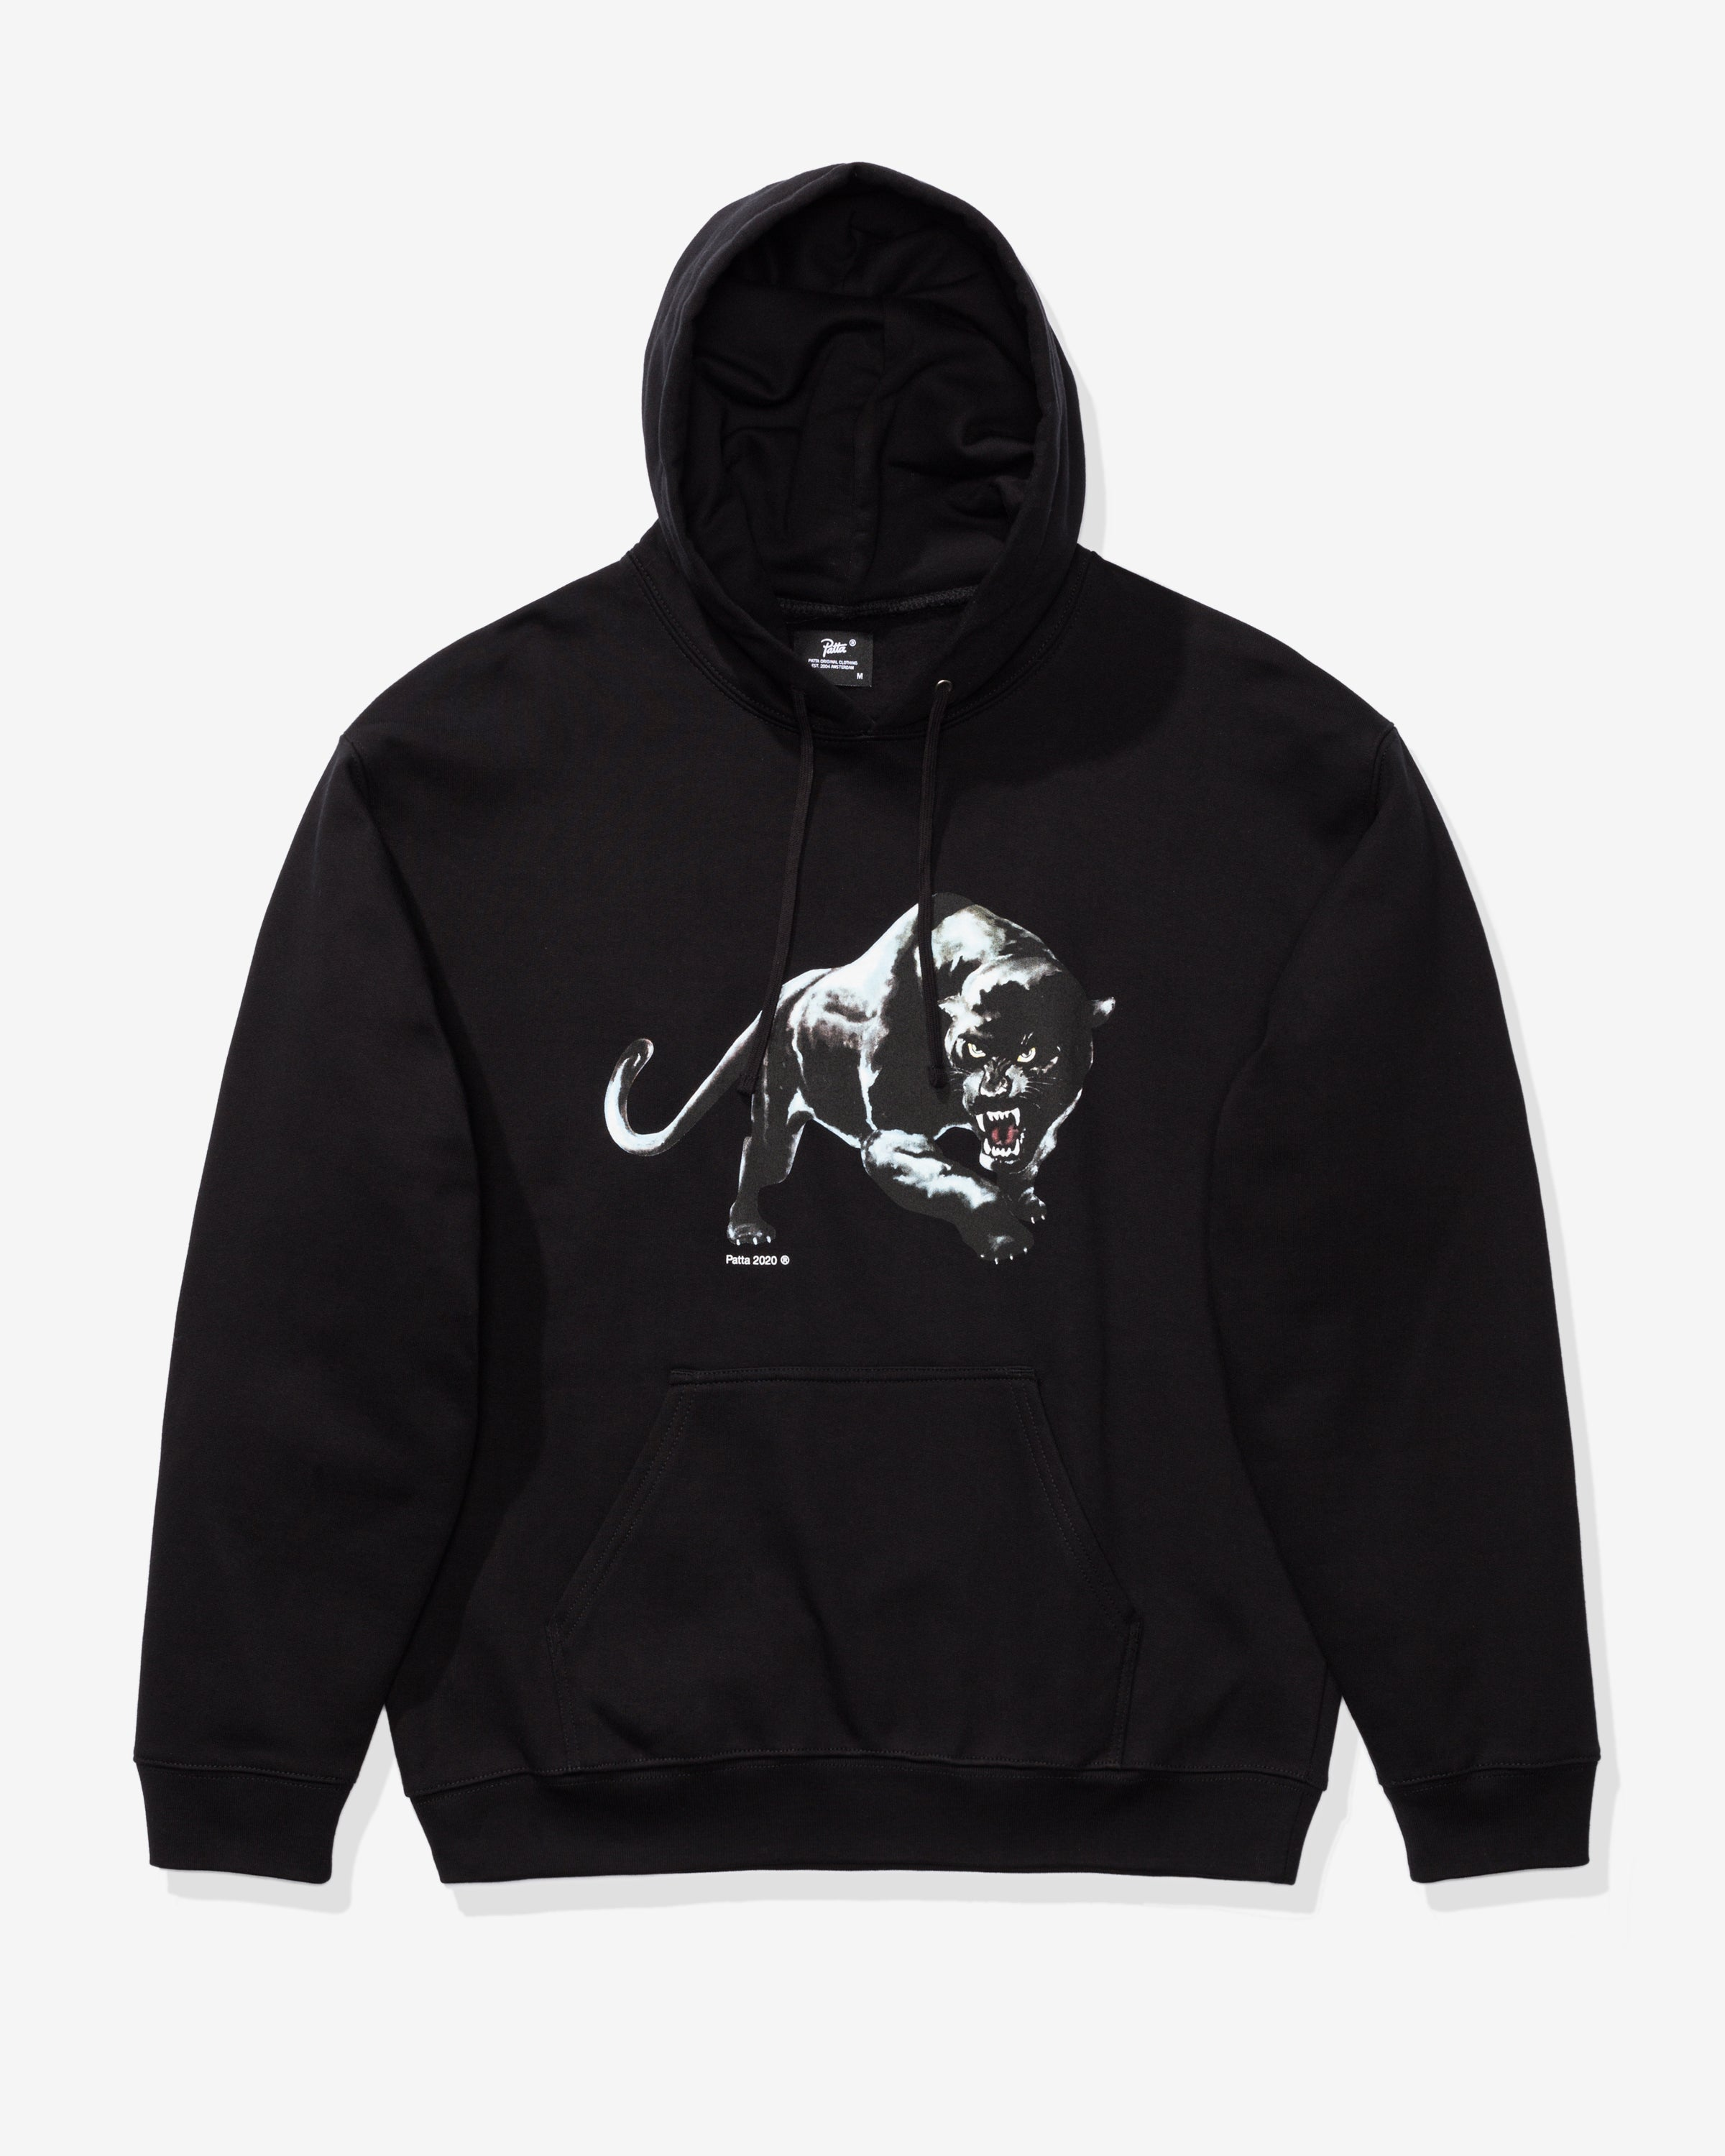 PATTA PANTHER HOODED SWEATSHIRT - BLACK